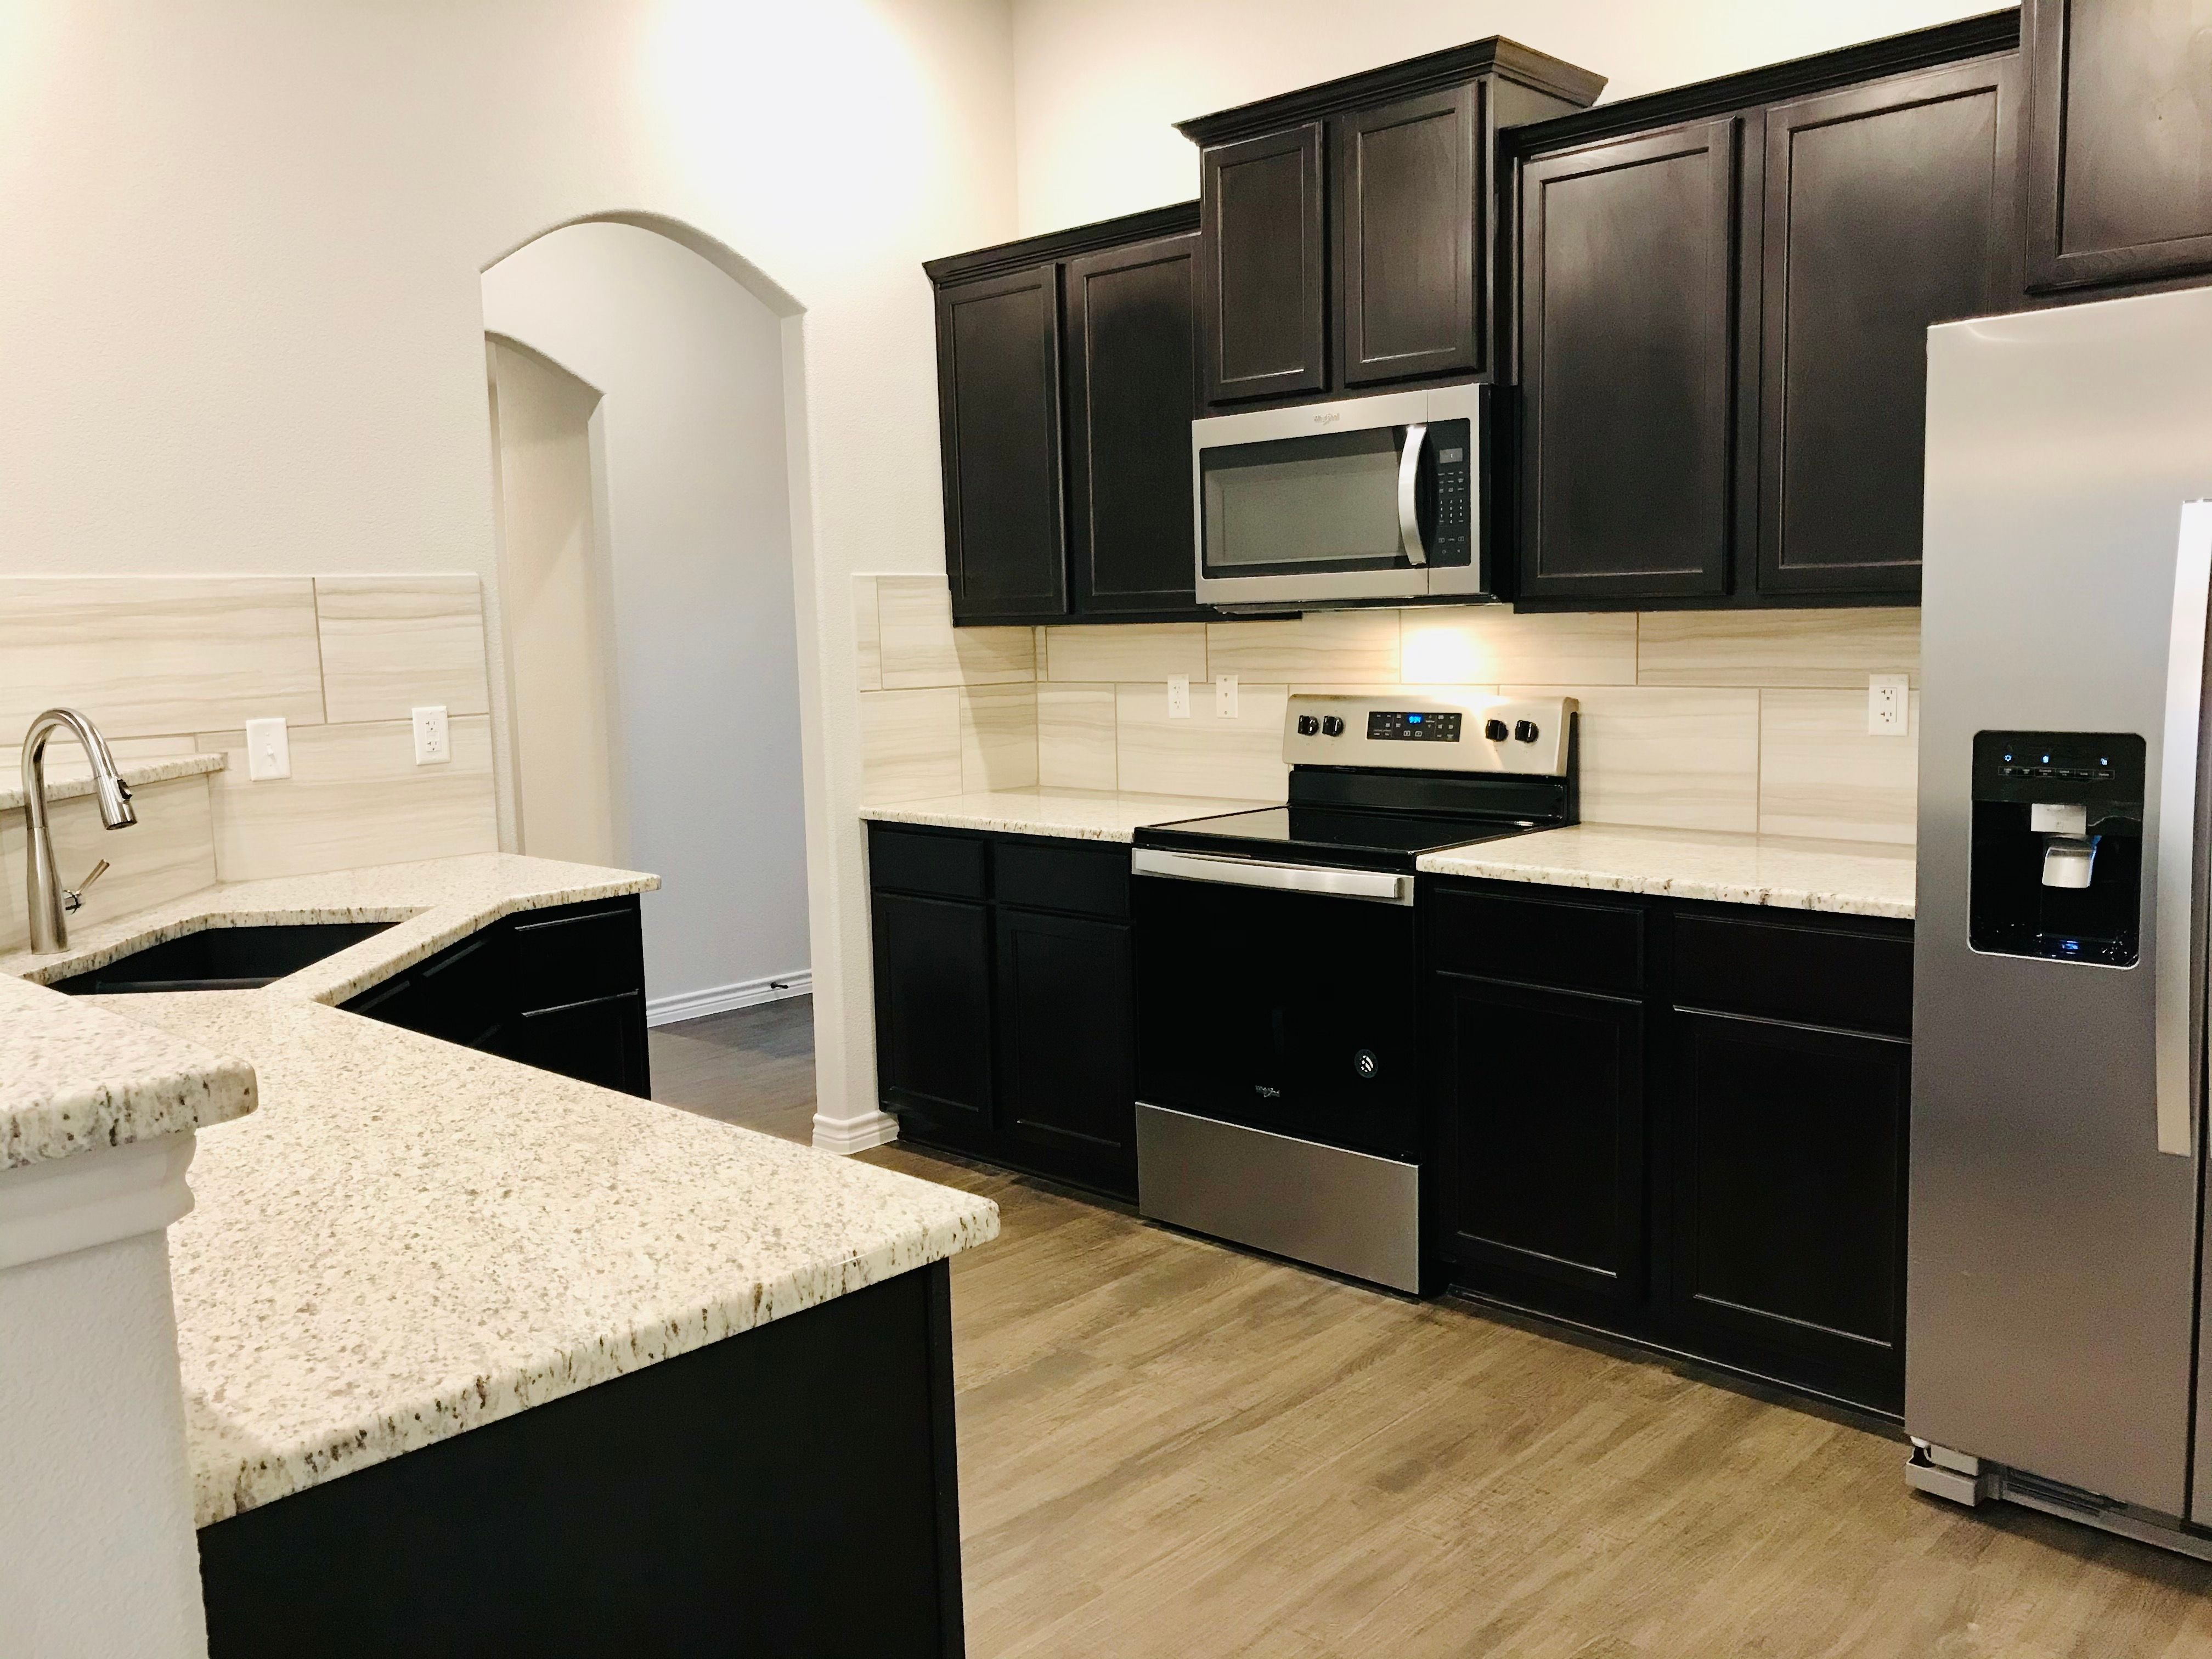 Kitchen featured in the Spring Valley By Ashford Homes in Killeen, TX